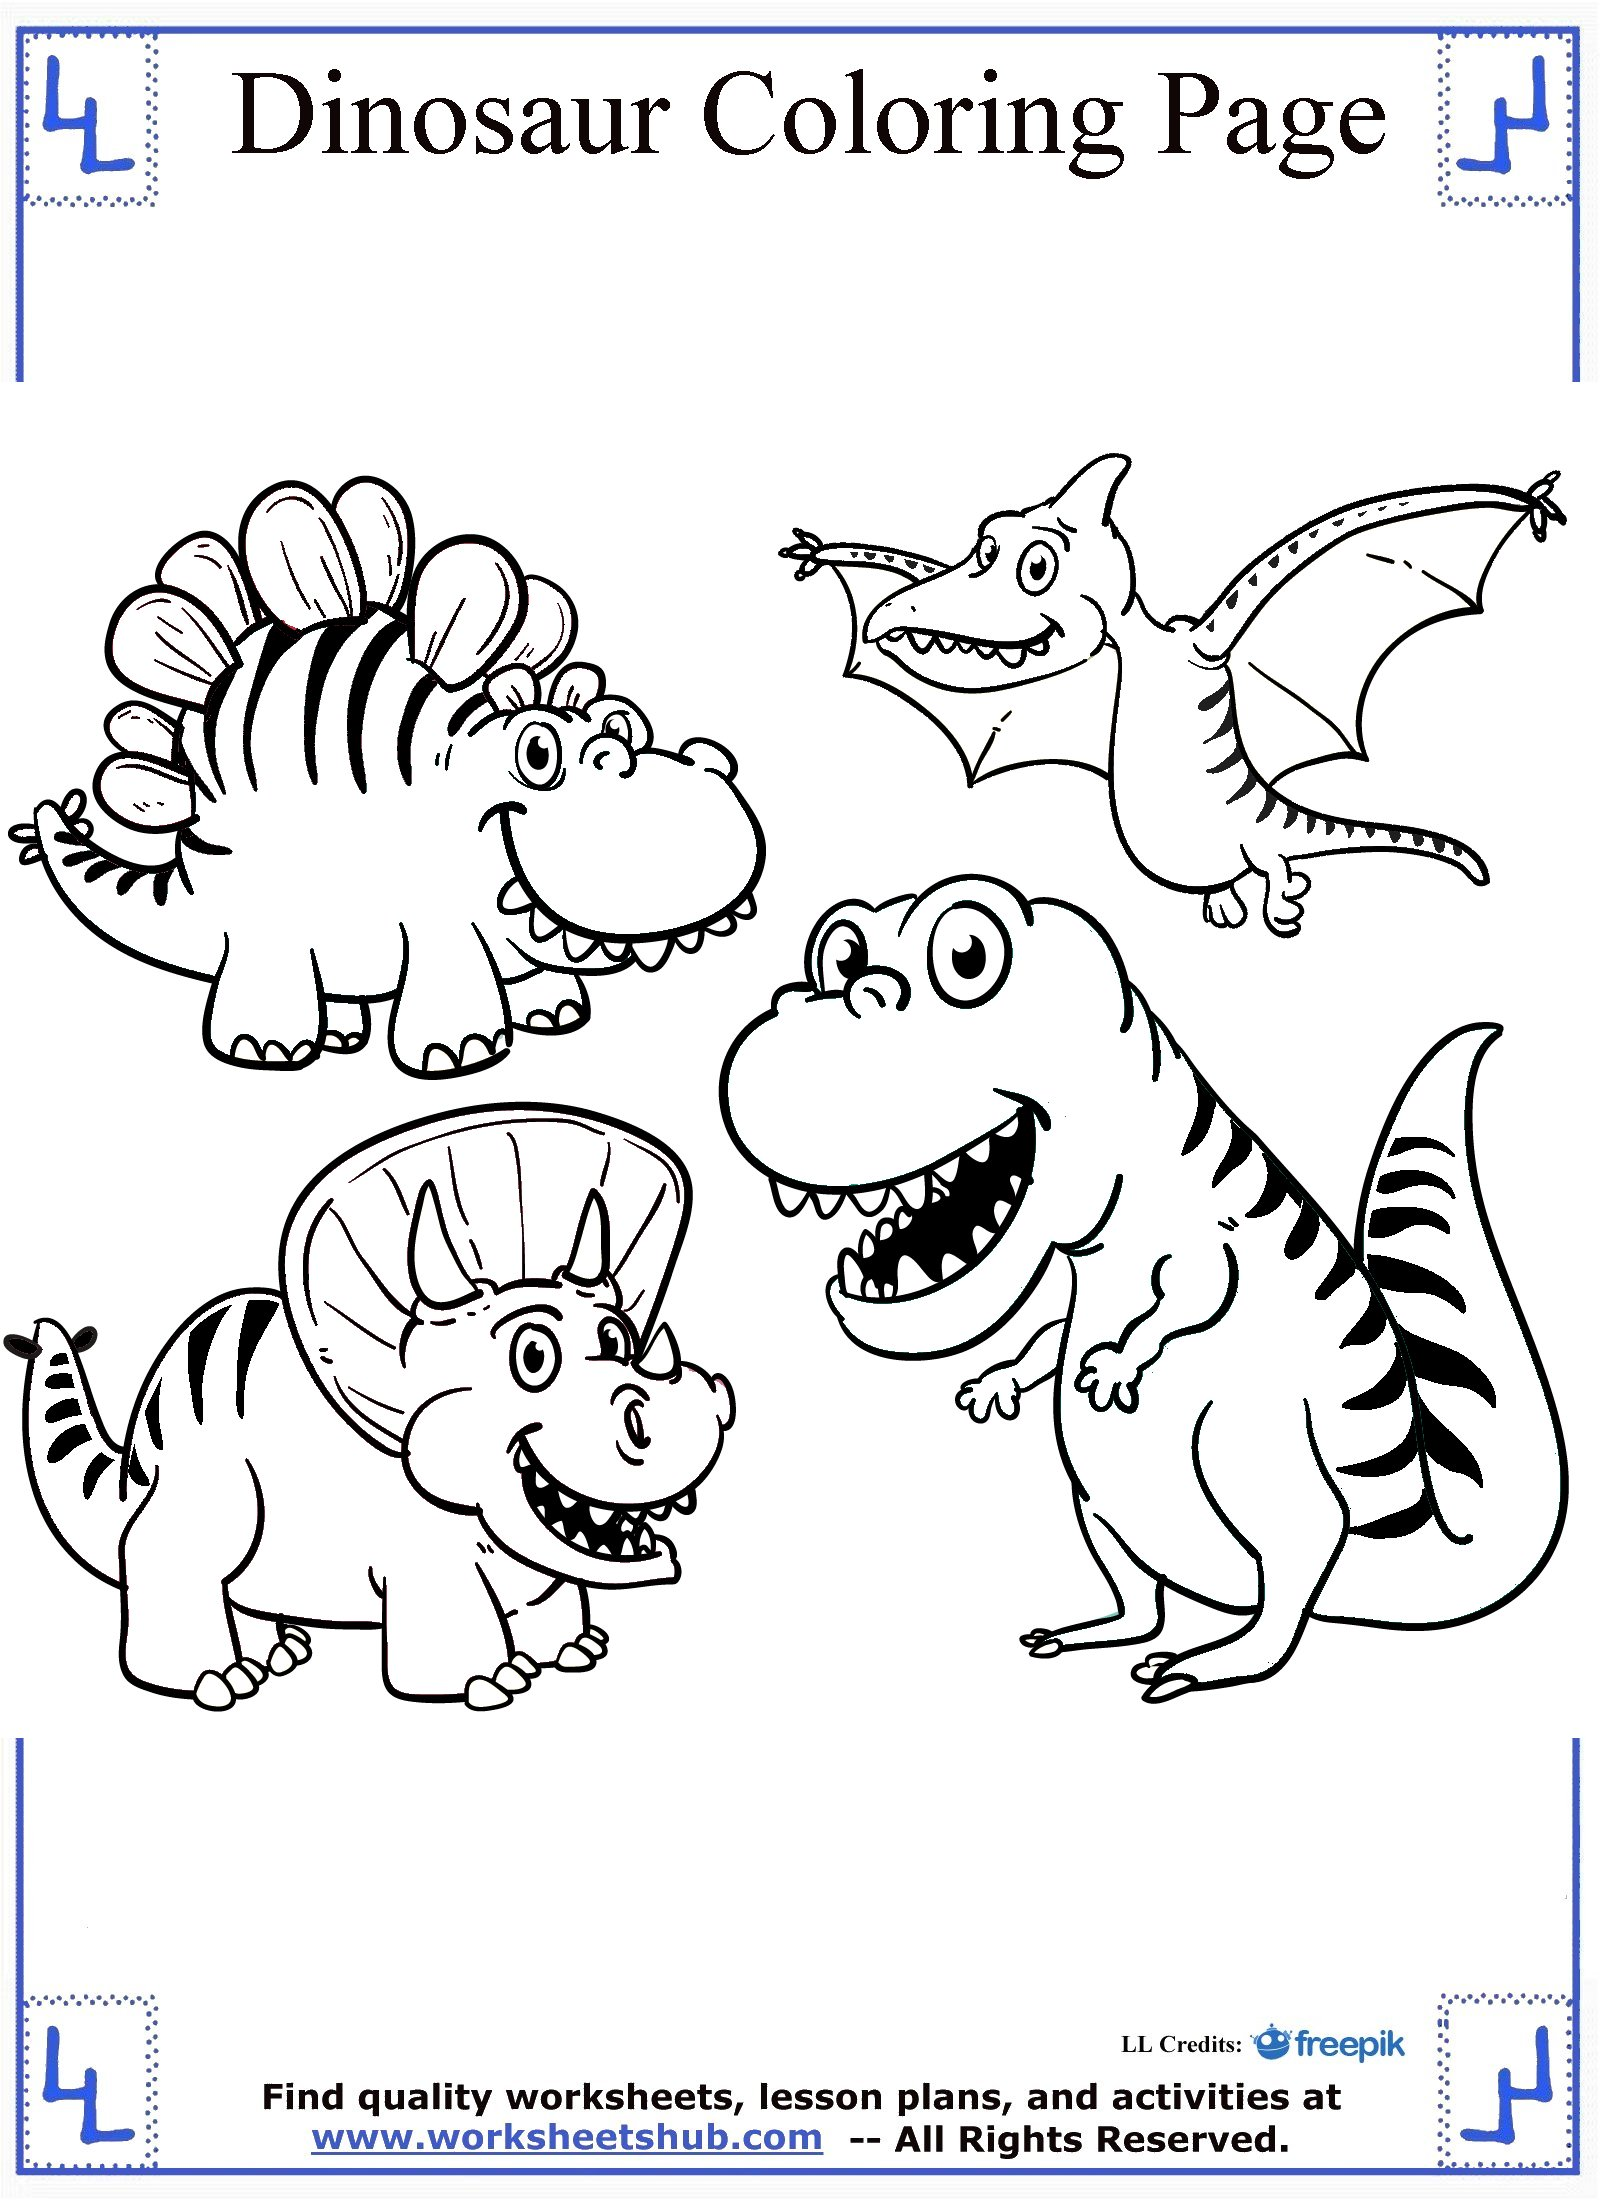 Dinosaur coloring pages Coloring book dinosaurs